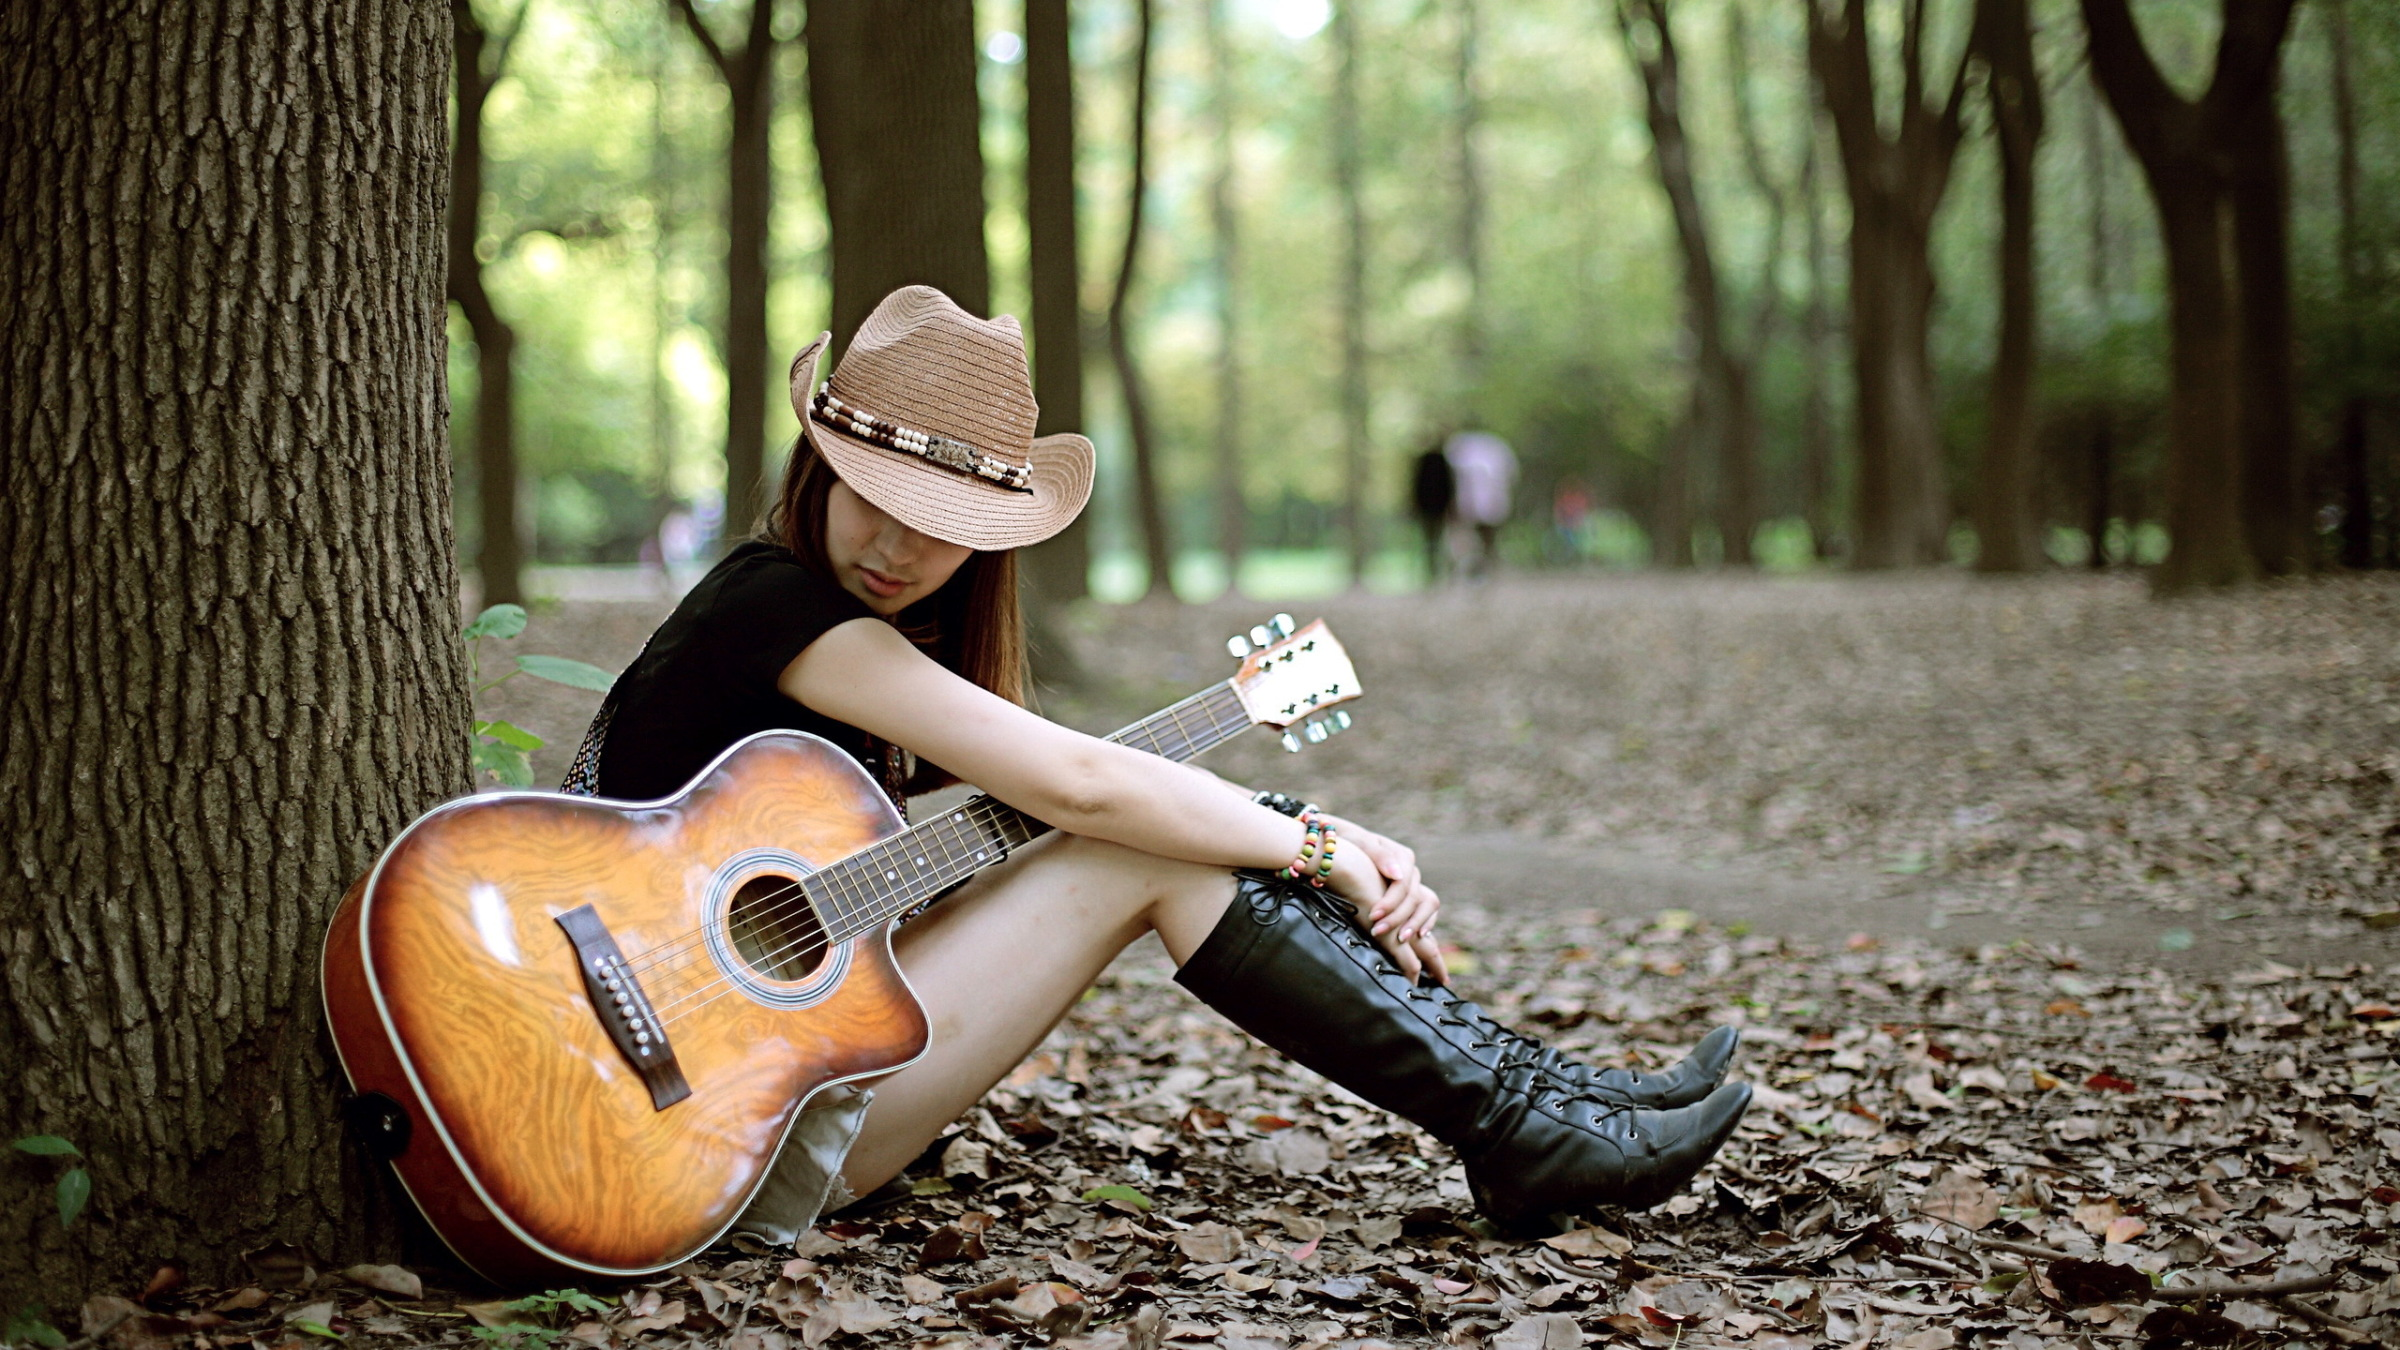 guitar-wallpaper-for-girls